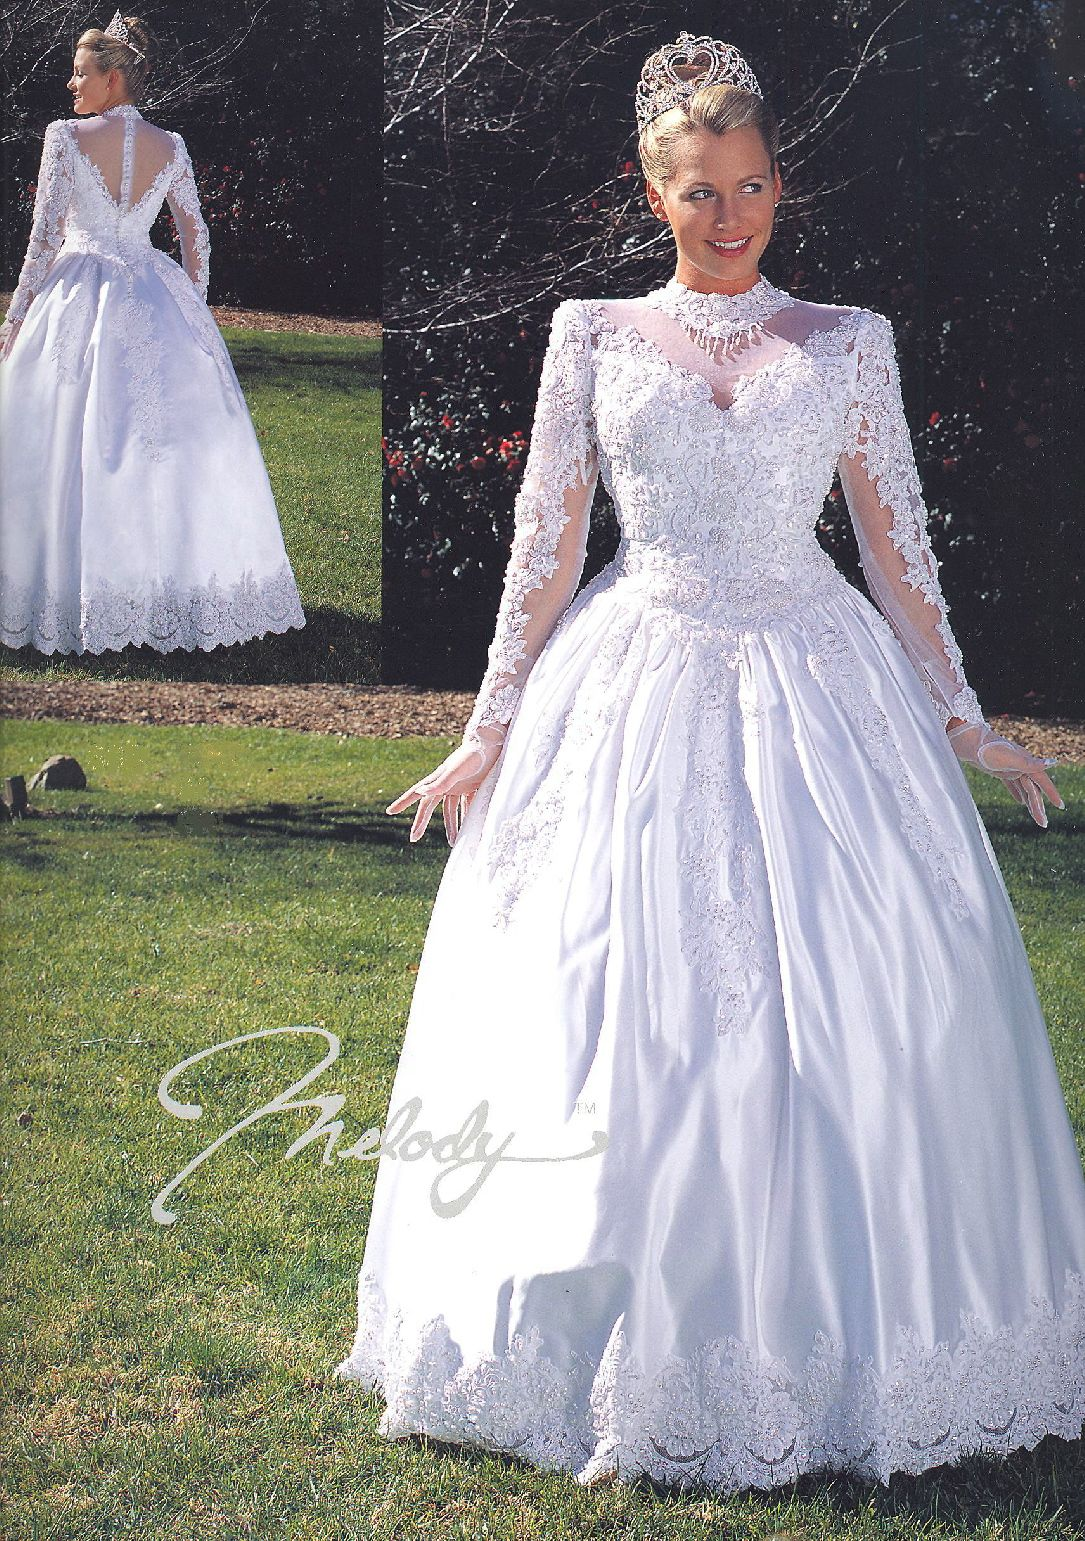 Wedding Gowns<BR>Cotillion Gowns<BR>Debutante Gowns by MELODY ...